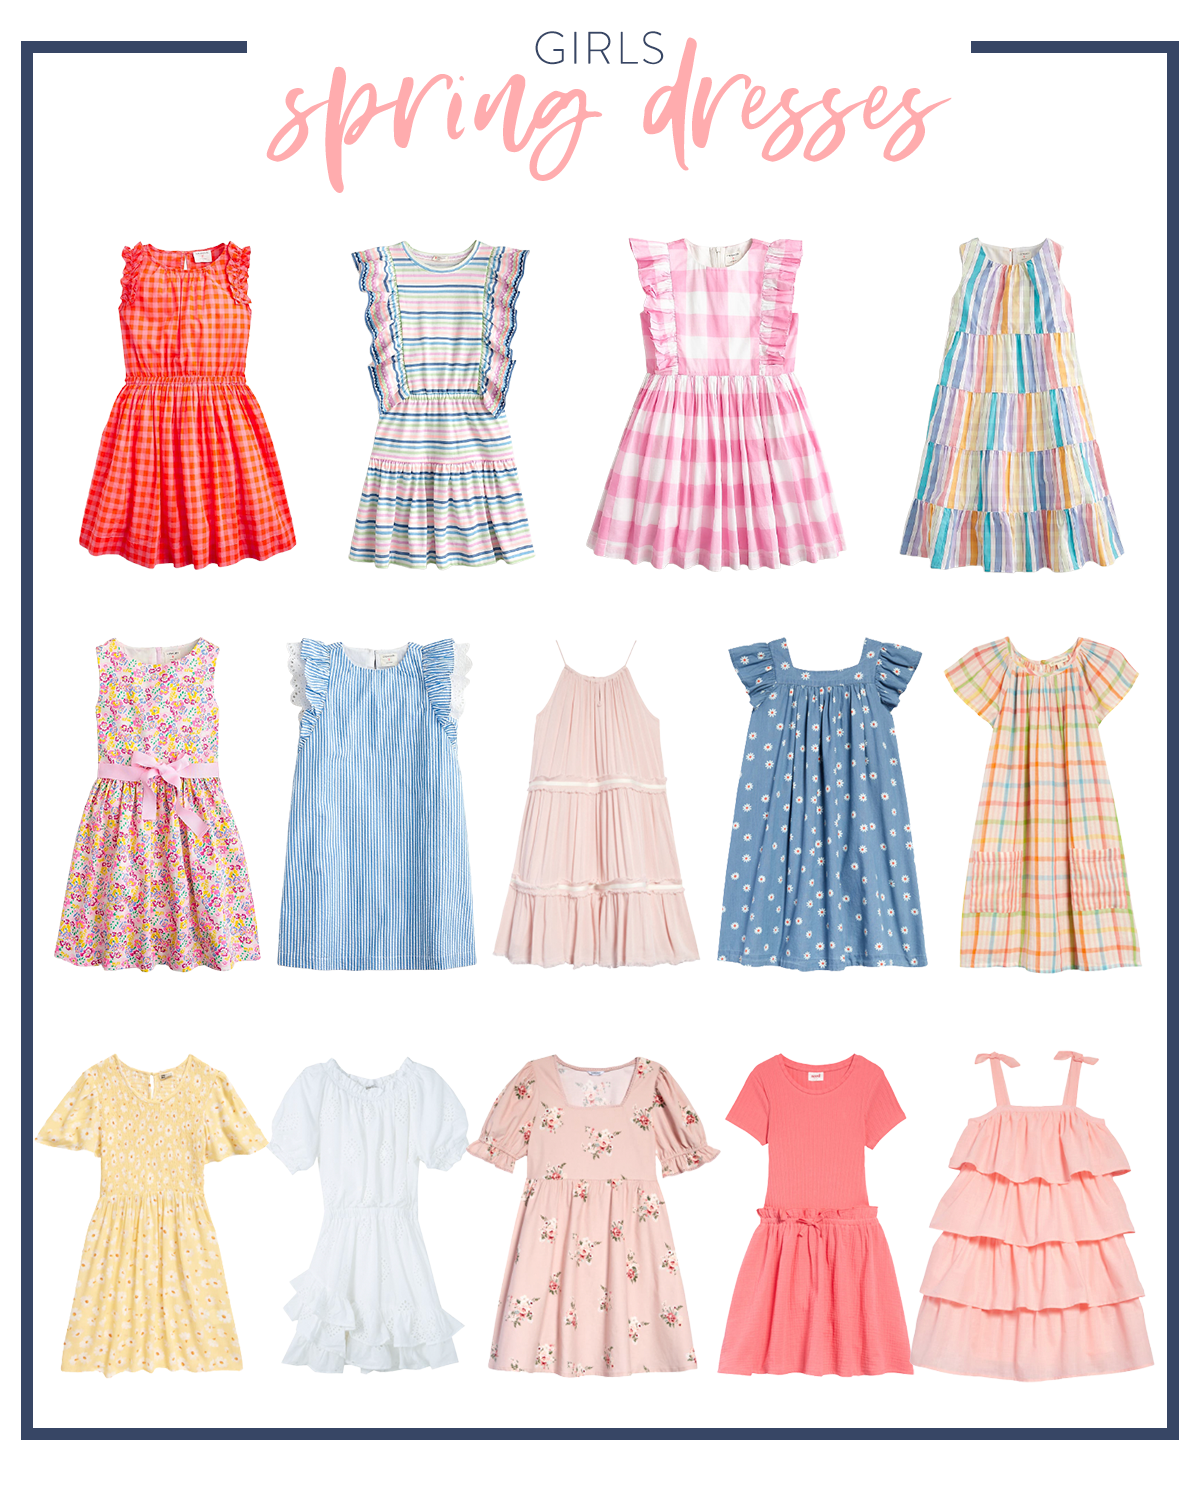 Spring Dresses by popular Houston fashion blog, Fancy Ashley: collage image of sleeveless red gingham dress, rainbow stripe dress, pink and white gingham flutter sleeve dress, pastel rainbow sleeveless maxi dress, multi color floral print dress with a pink bow sash, blue and white gingham flutter sleeve dress, pink spaghetti strap dress, blue and white daisy print dress, rainbow stripe dress with pockets, yellow dress, white ruffle hem dress, pink and white floral print dress, pink dress, pink ruffle tier tie strap dress.